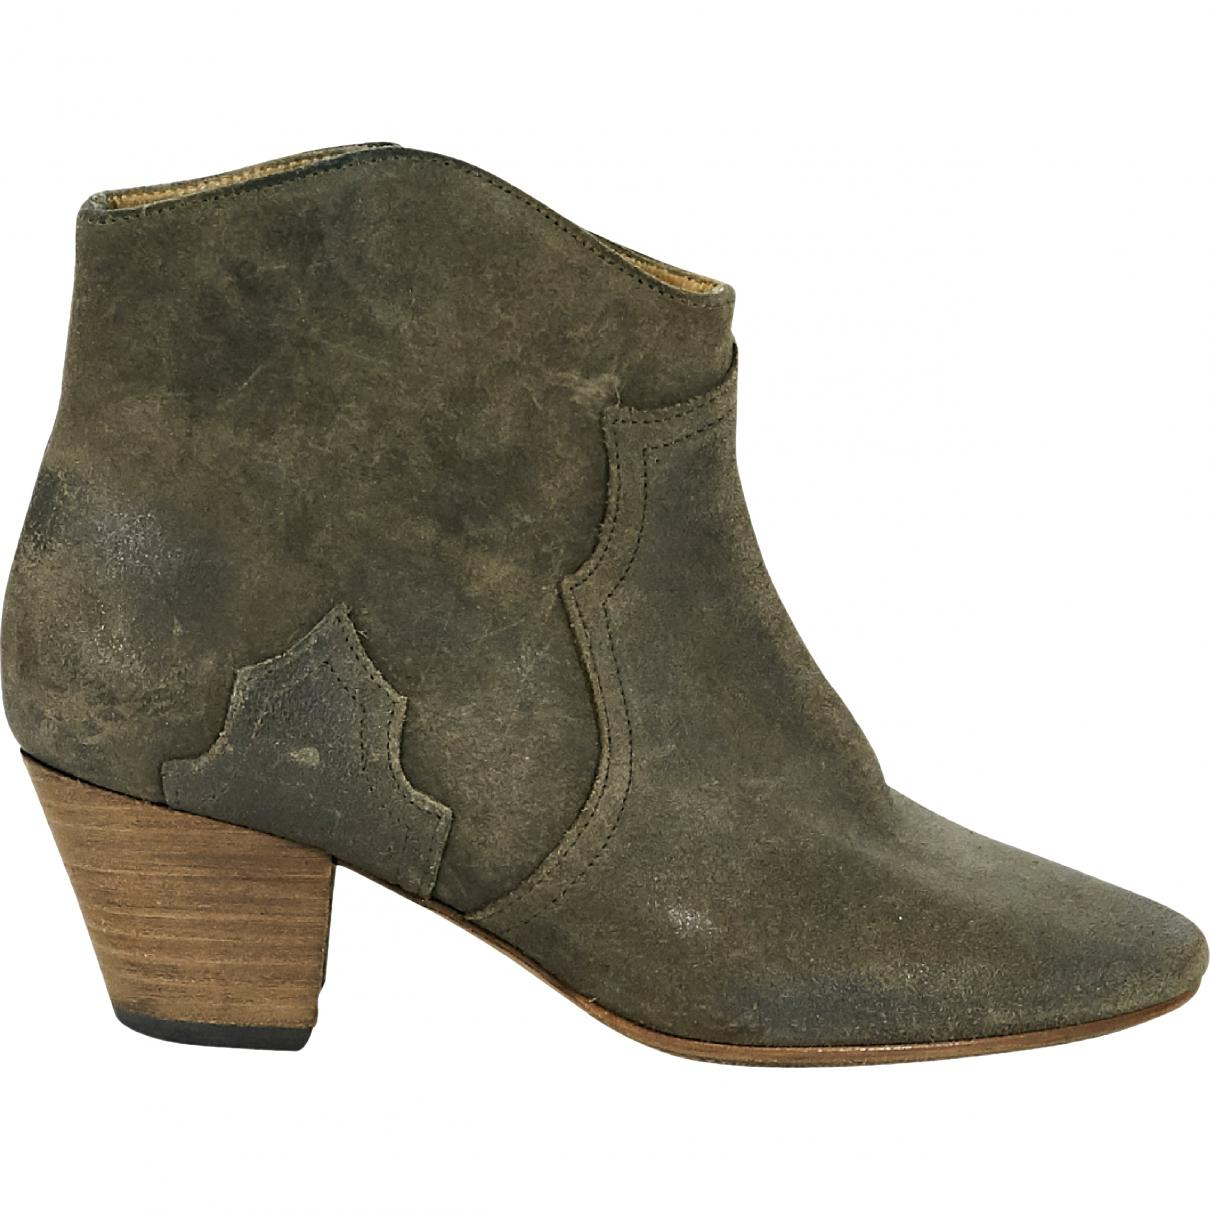 Pre-owned - Dicker ankle boots Isabel Marant 3KW6lAVxP